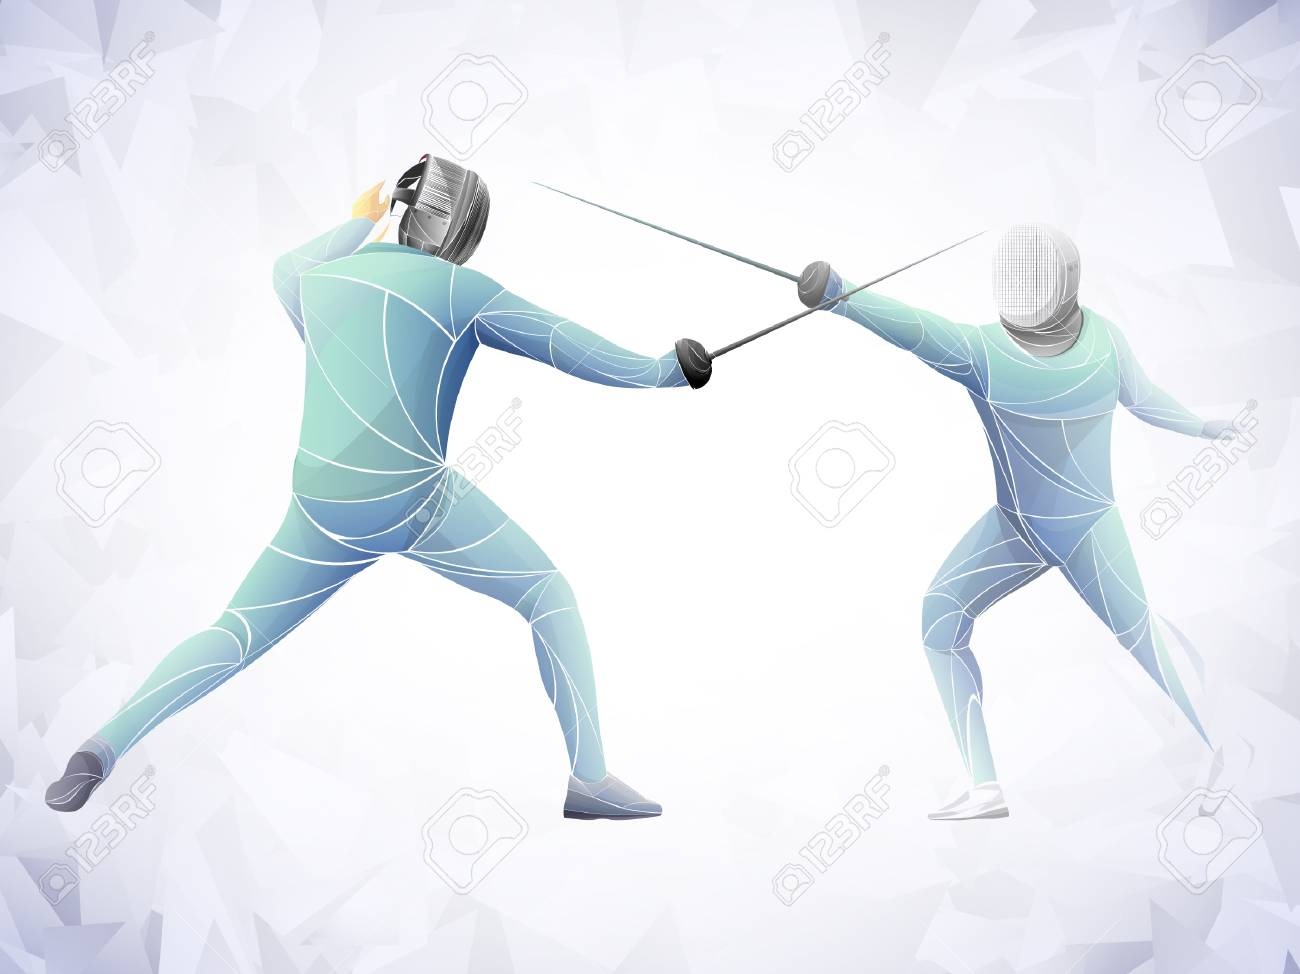 Fencer. Man wearing fencing suit practicing with sword. Sports arena and lense-flares. Neon effect. Vector illustration. - 110314801